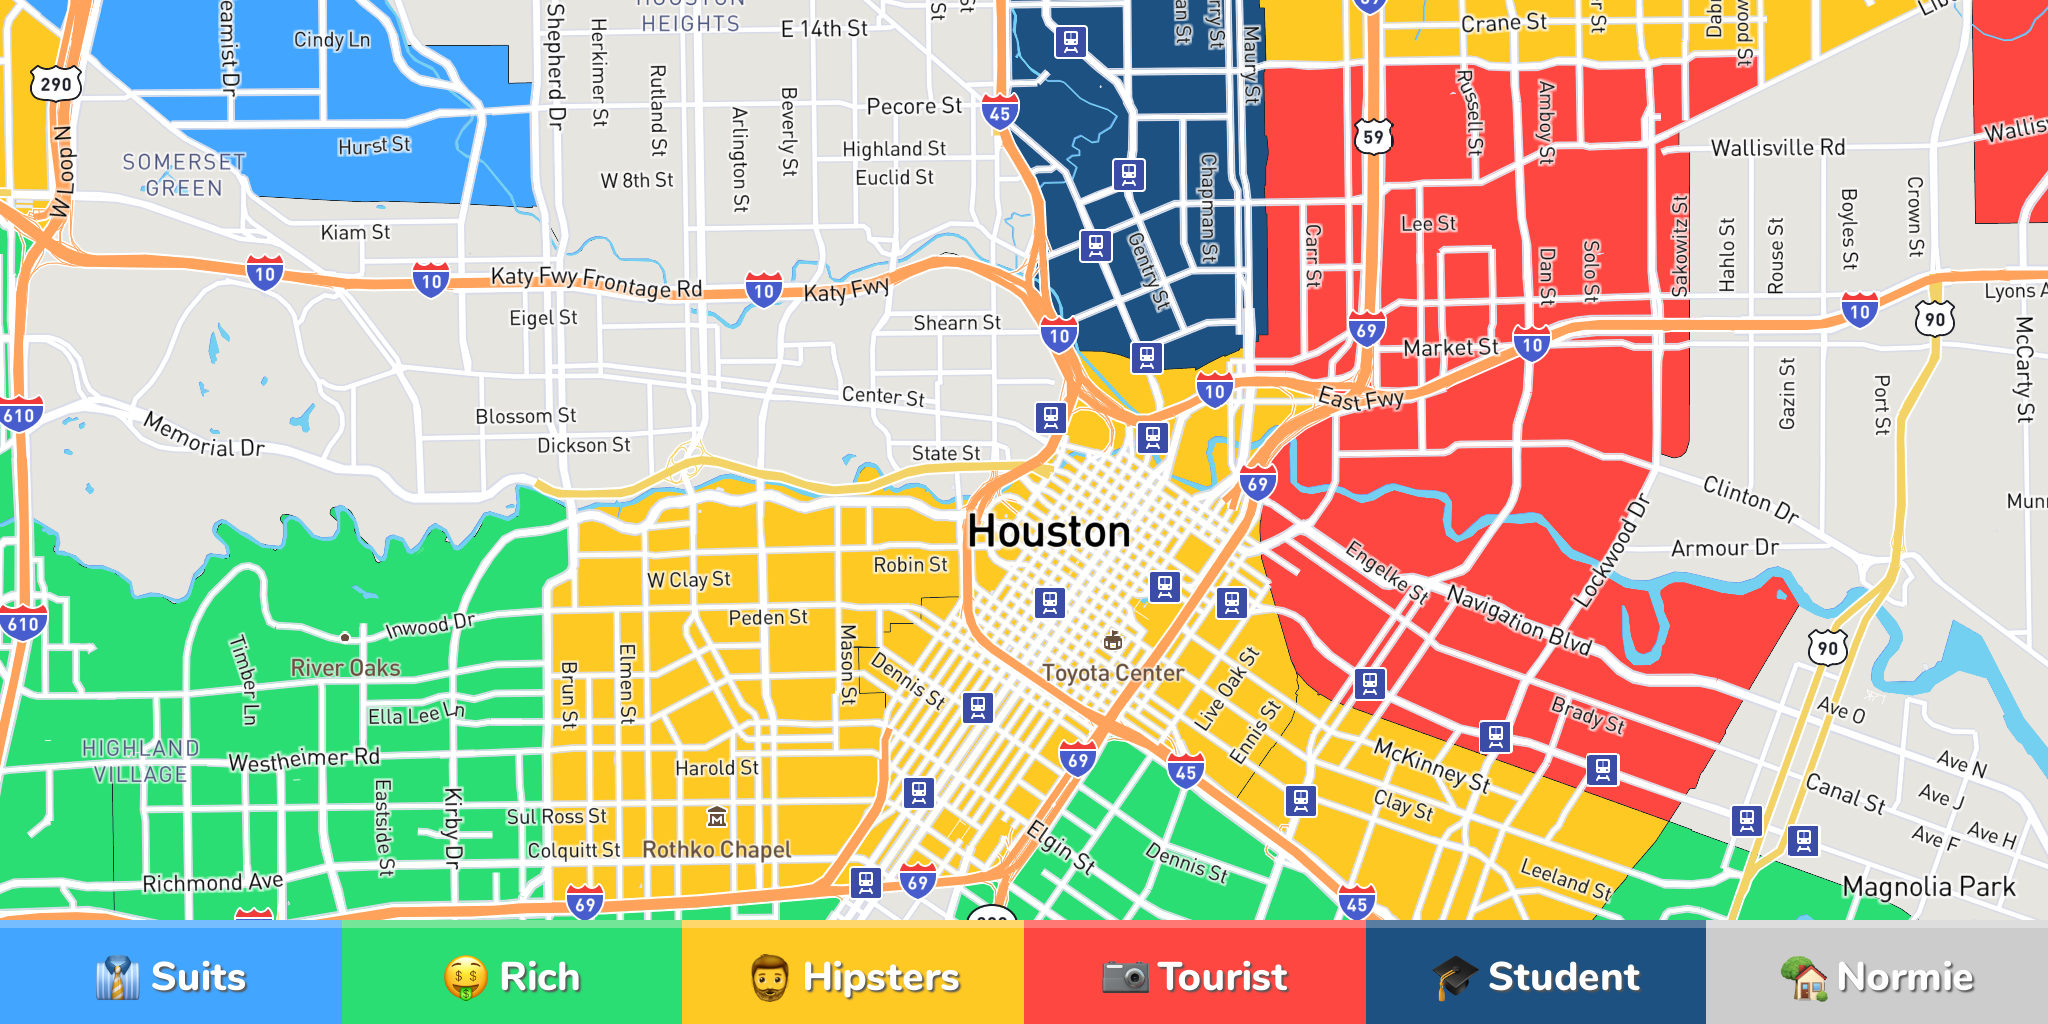 Where to Stay in Houston: Neighborhood Map by 202 locals on